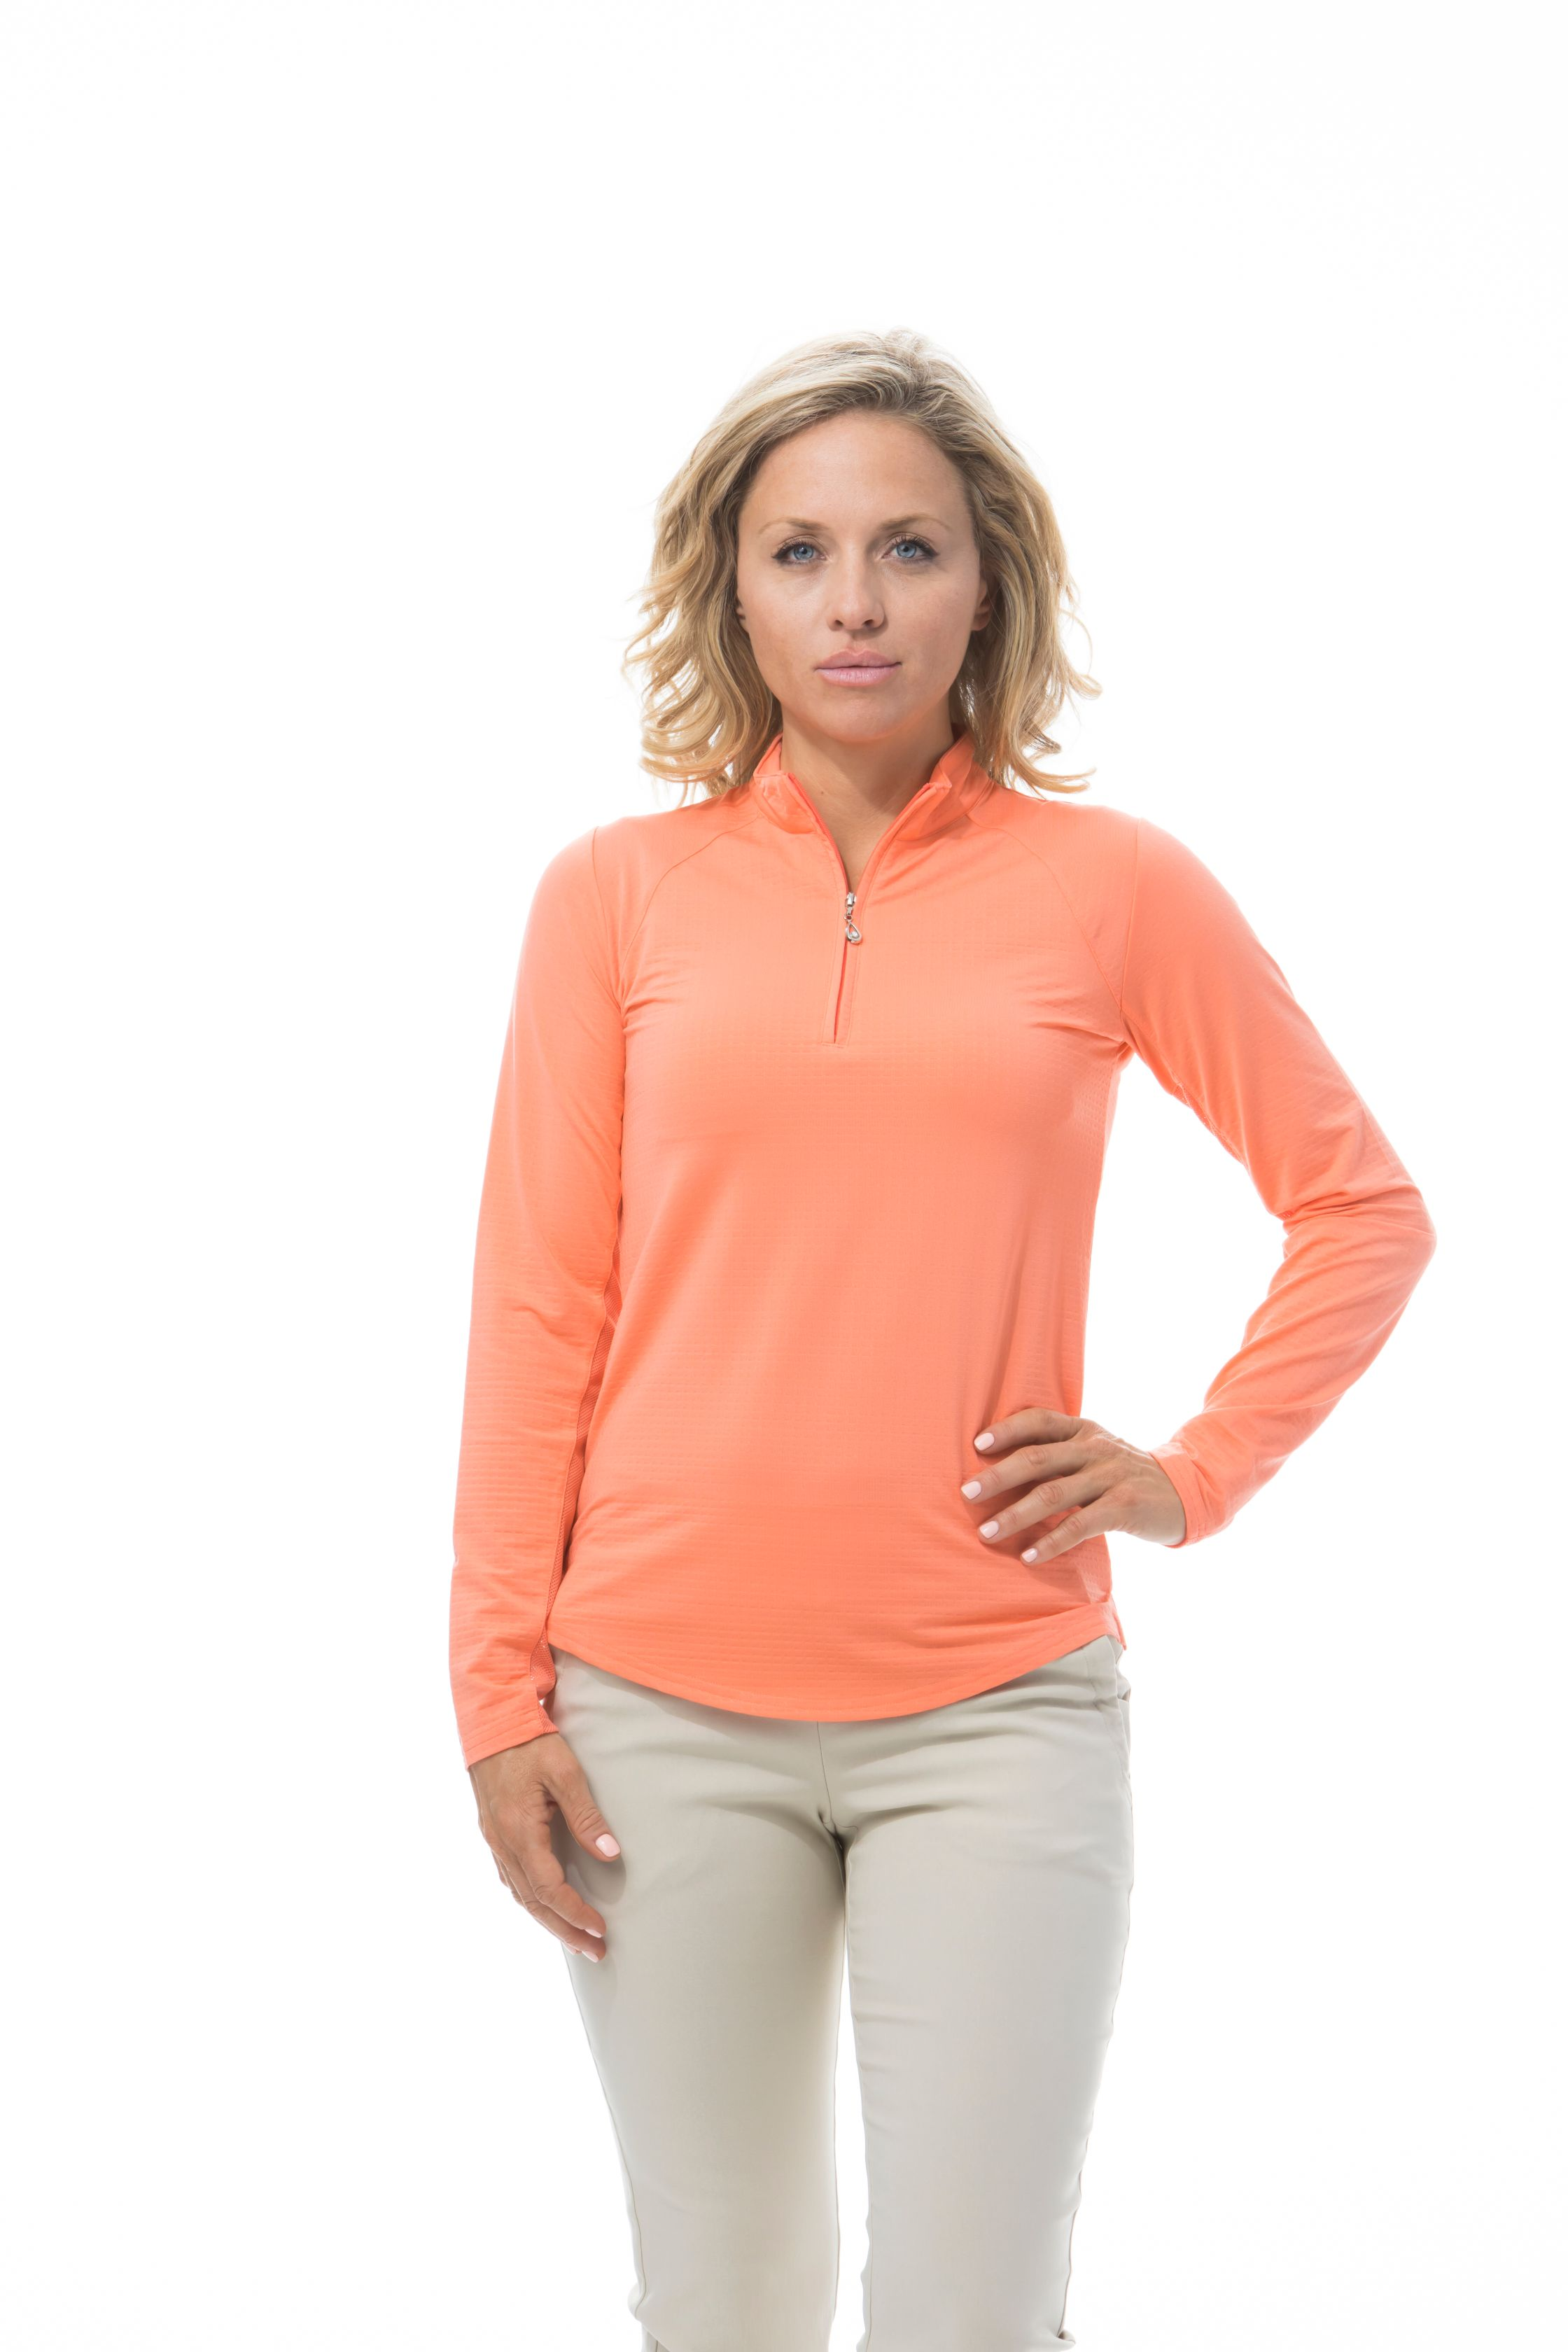 900601 SanSoleil SolTek Ice  Zip Polo. Papaya Living Coral